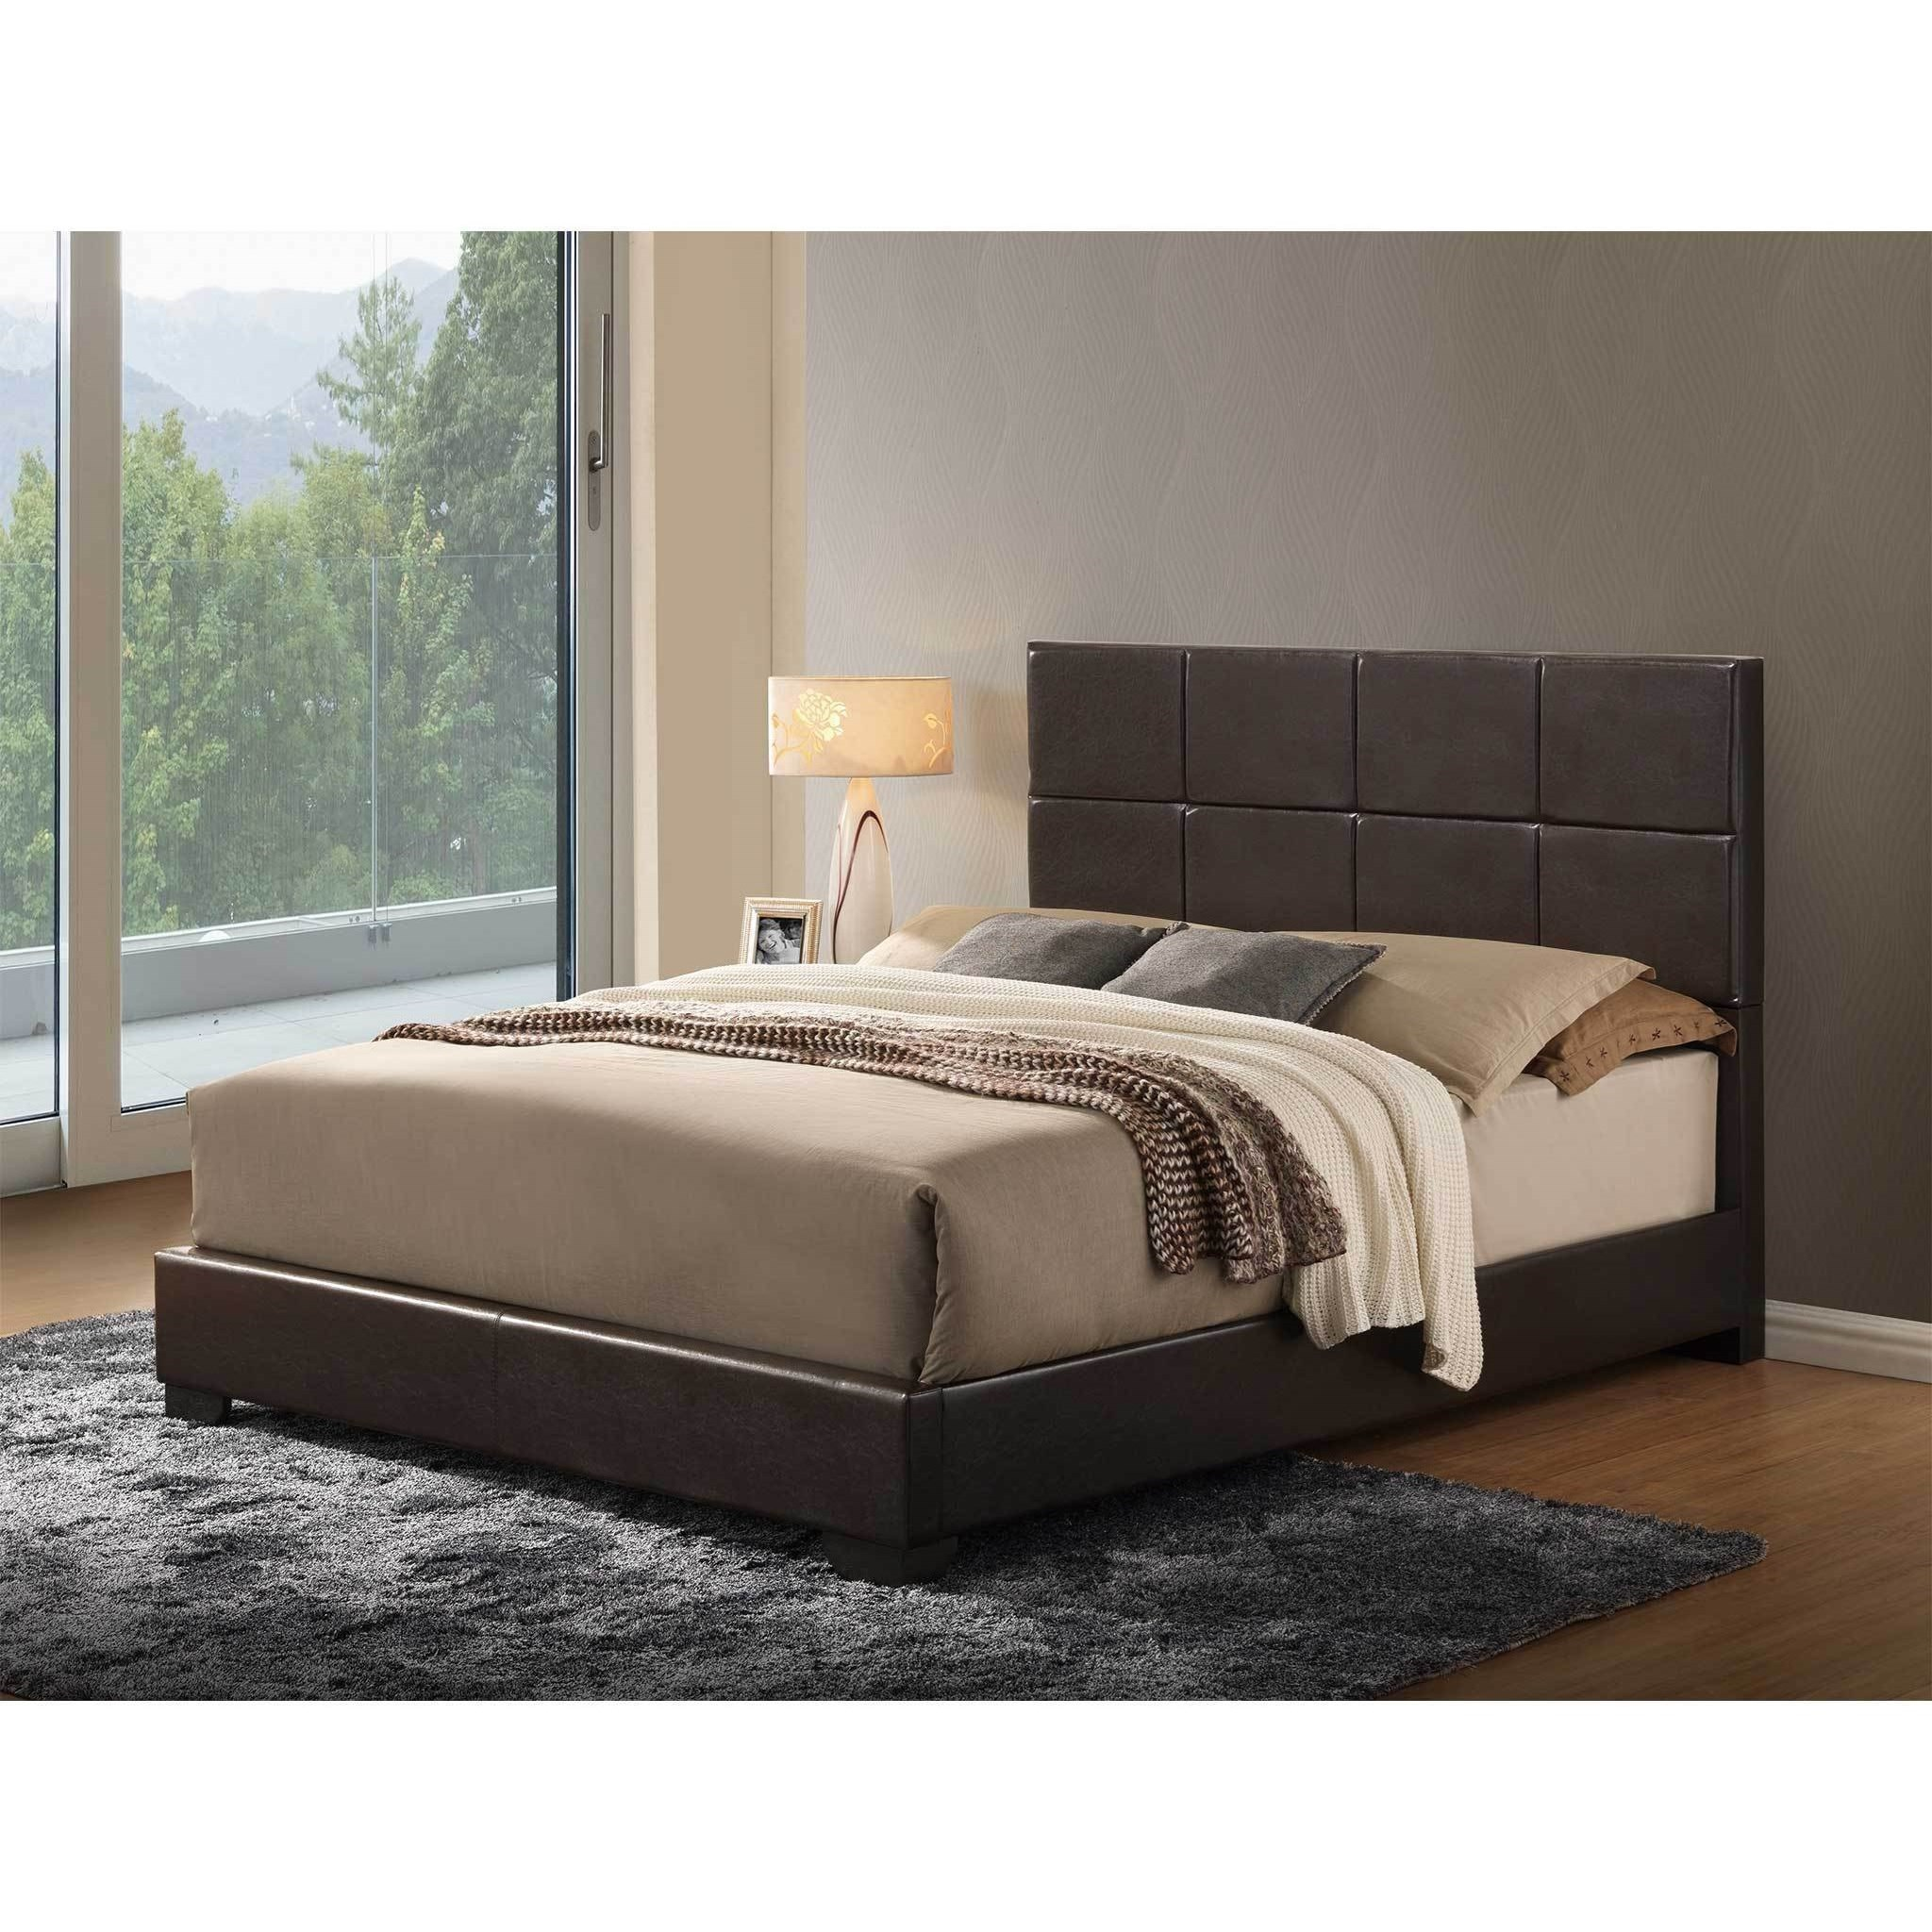 8566 Upholstered Queen Bed by Global Furniture at Dream Home Interiors